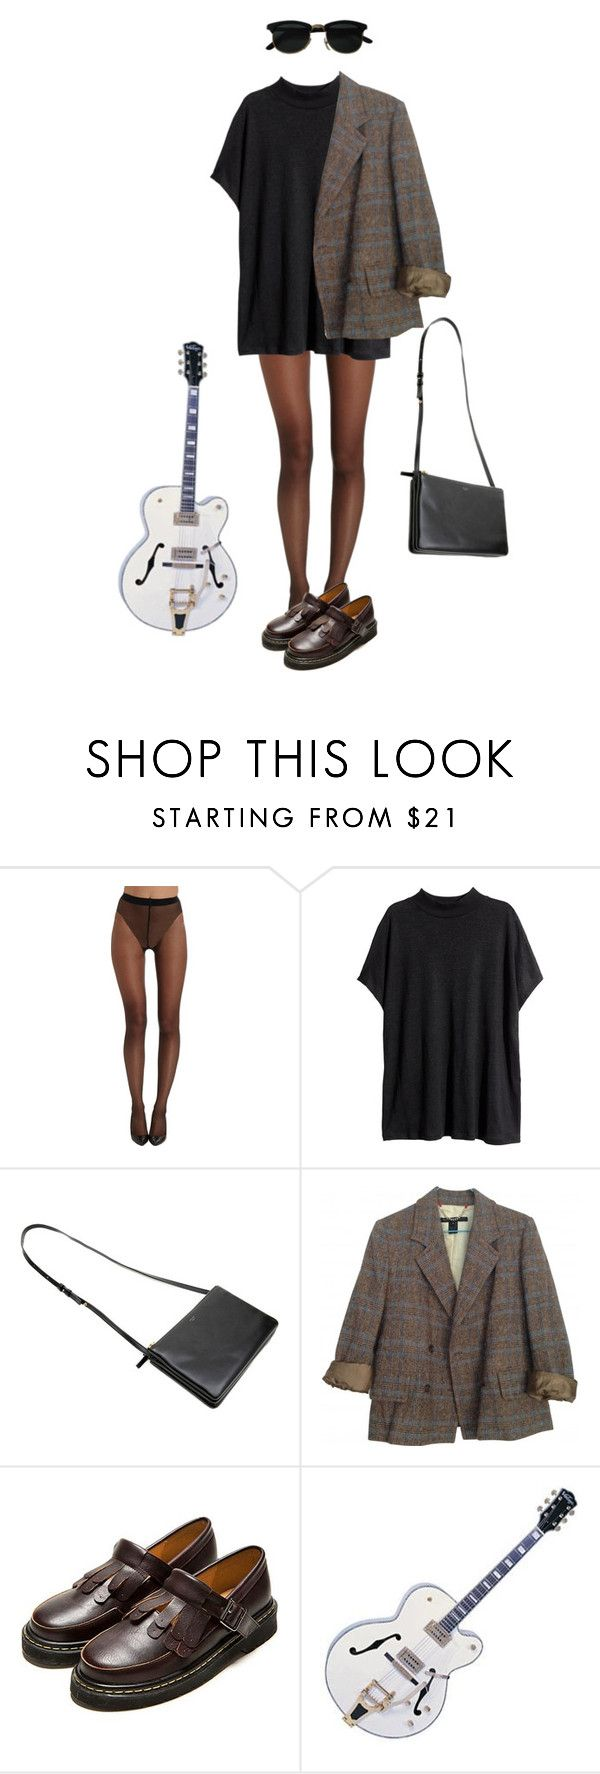 """""""Untitled #132"""" by borninthe1990s ❤ liked on Polyvore featuring Wolford, H&M and Marc by Marc Jacobs"""